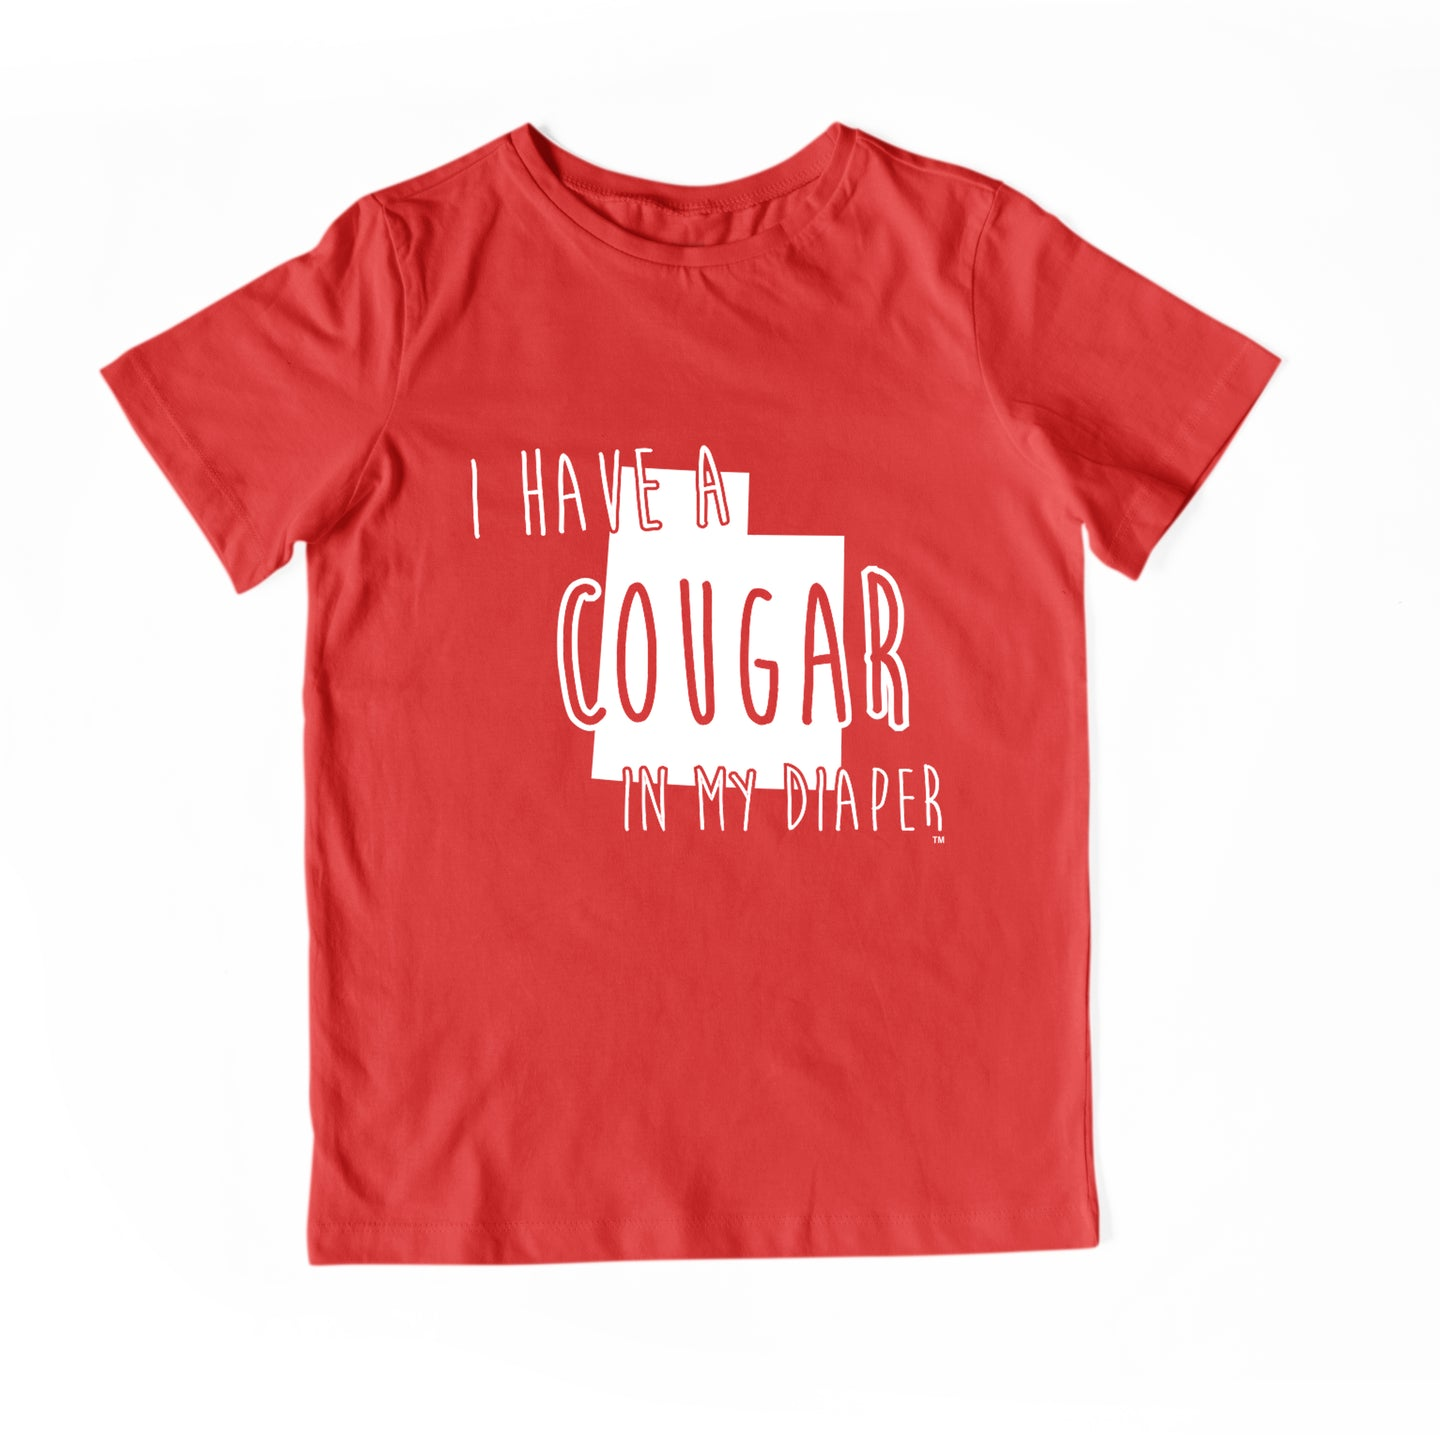 I HAVE A COUGAR IN MY DIAPER Child Tee